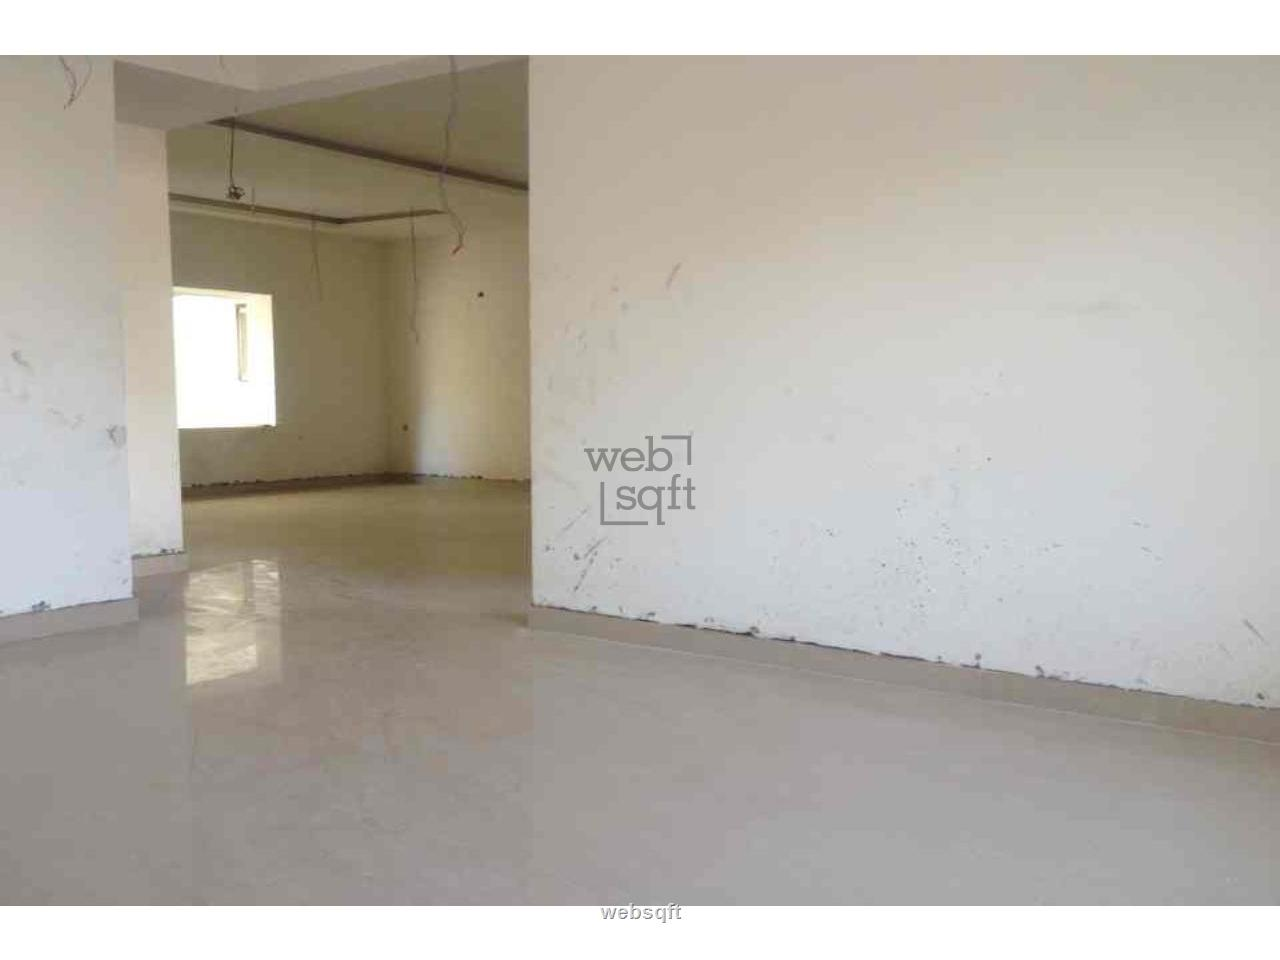 Websqft - Residential Apartment-flats - Property for Sale - in 1860Sq-ft/Dilsukh Nagar at Rs 7440000